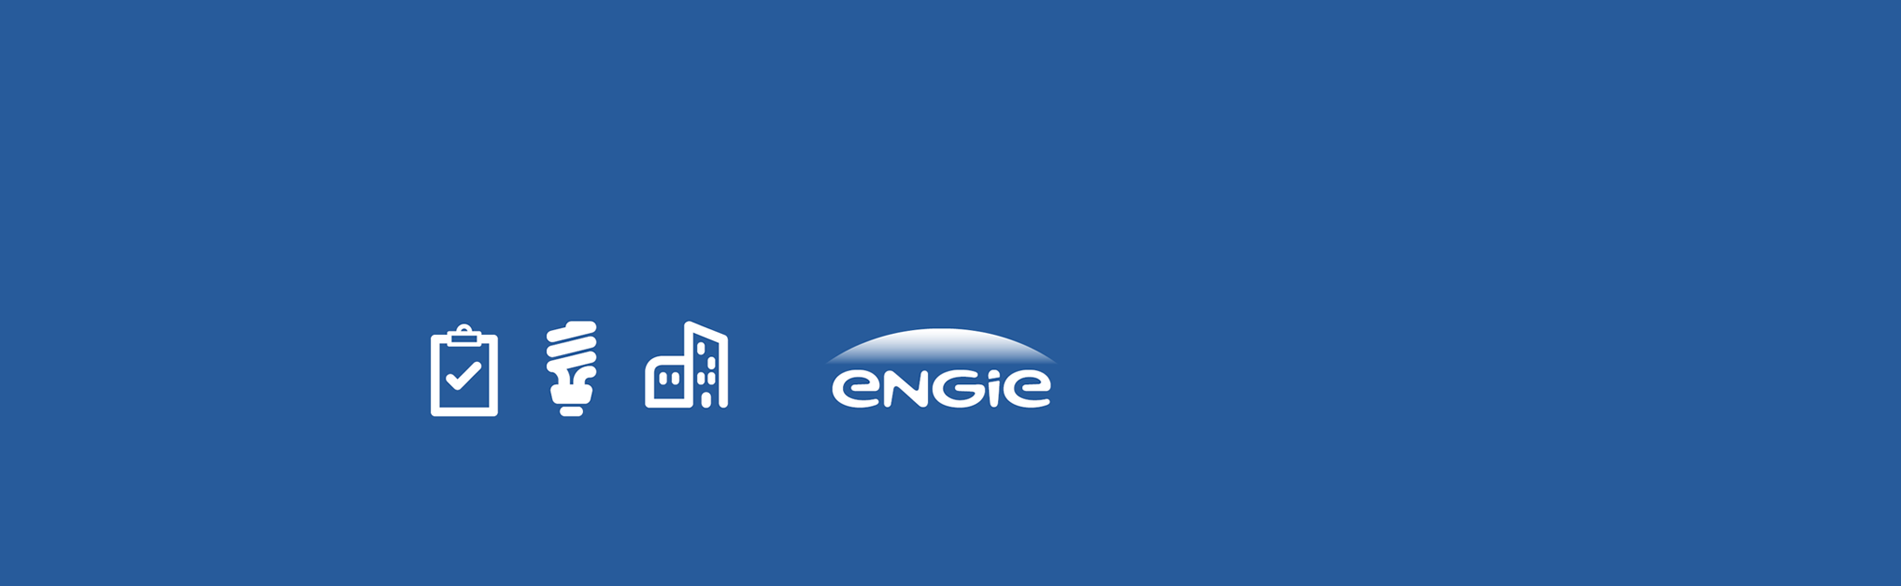 ENGIE becomes new knowledge partner